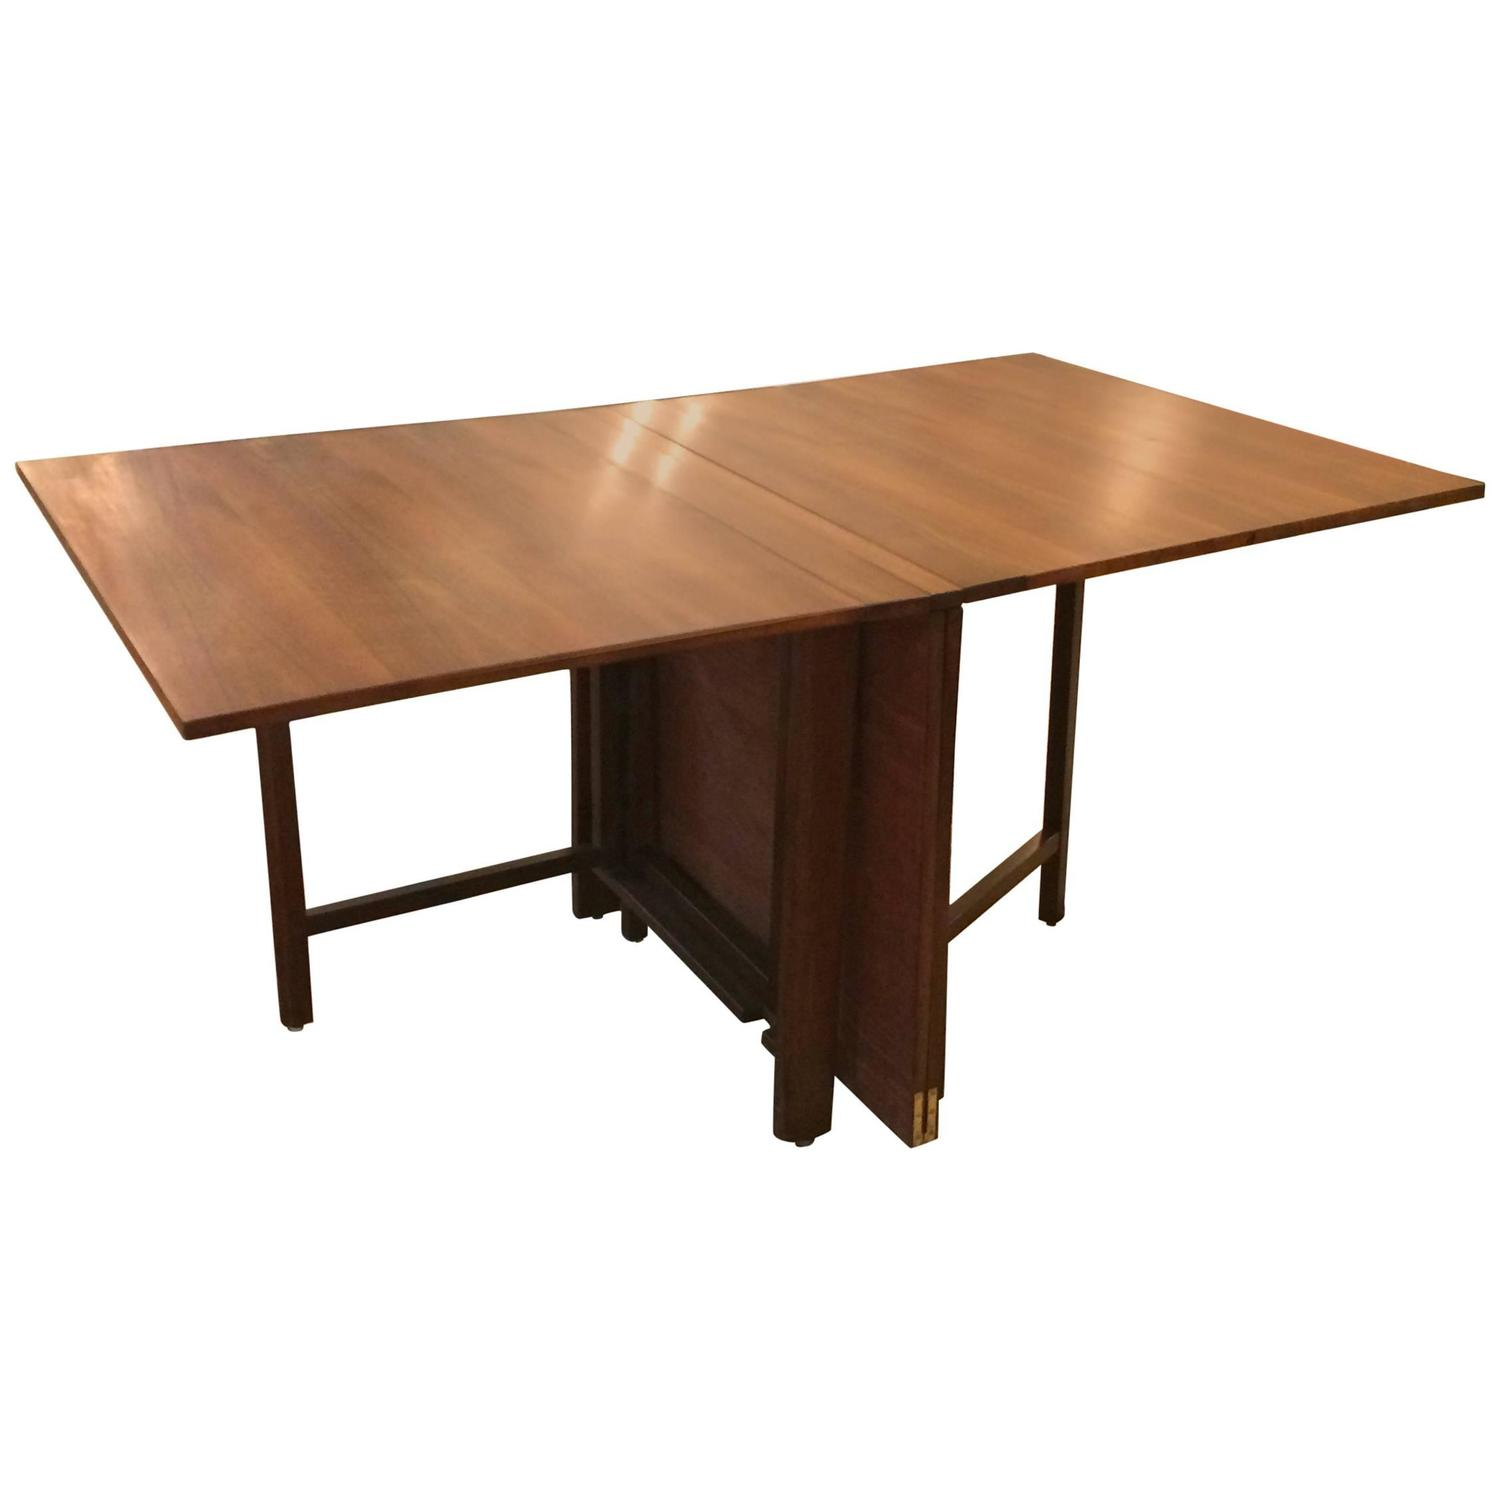 Sleek versatile maria extending dining table by bruno for Sleek dining room tables